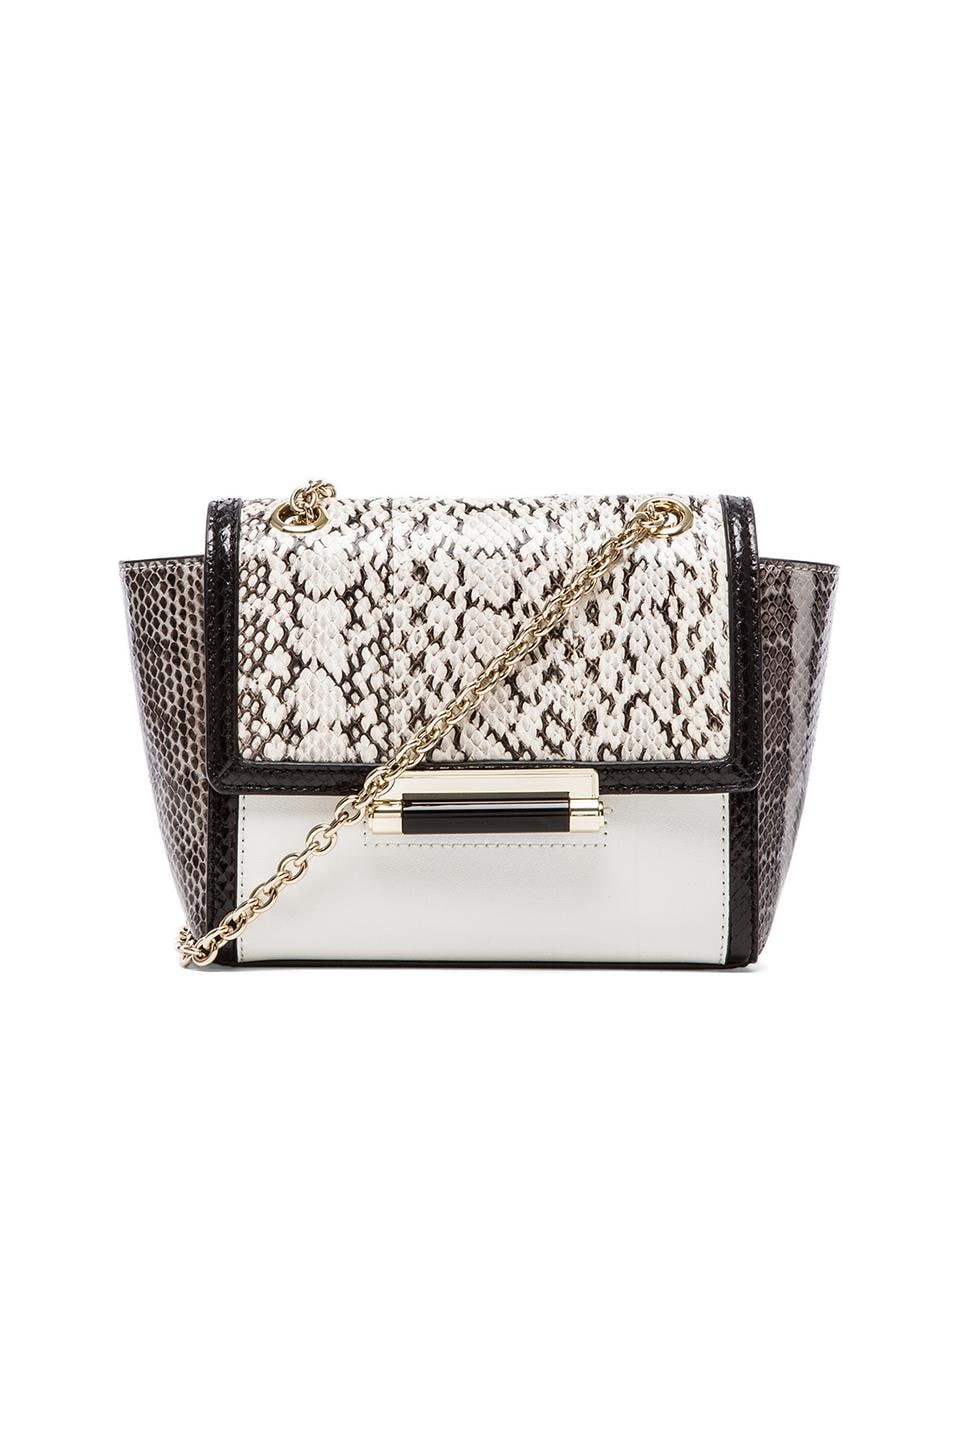 Diane von Furstenberg Mini Crossbody in Stone/Natural